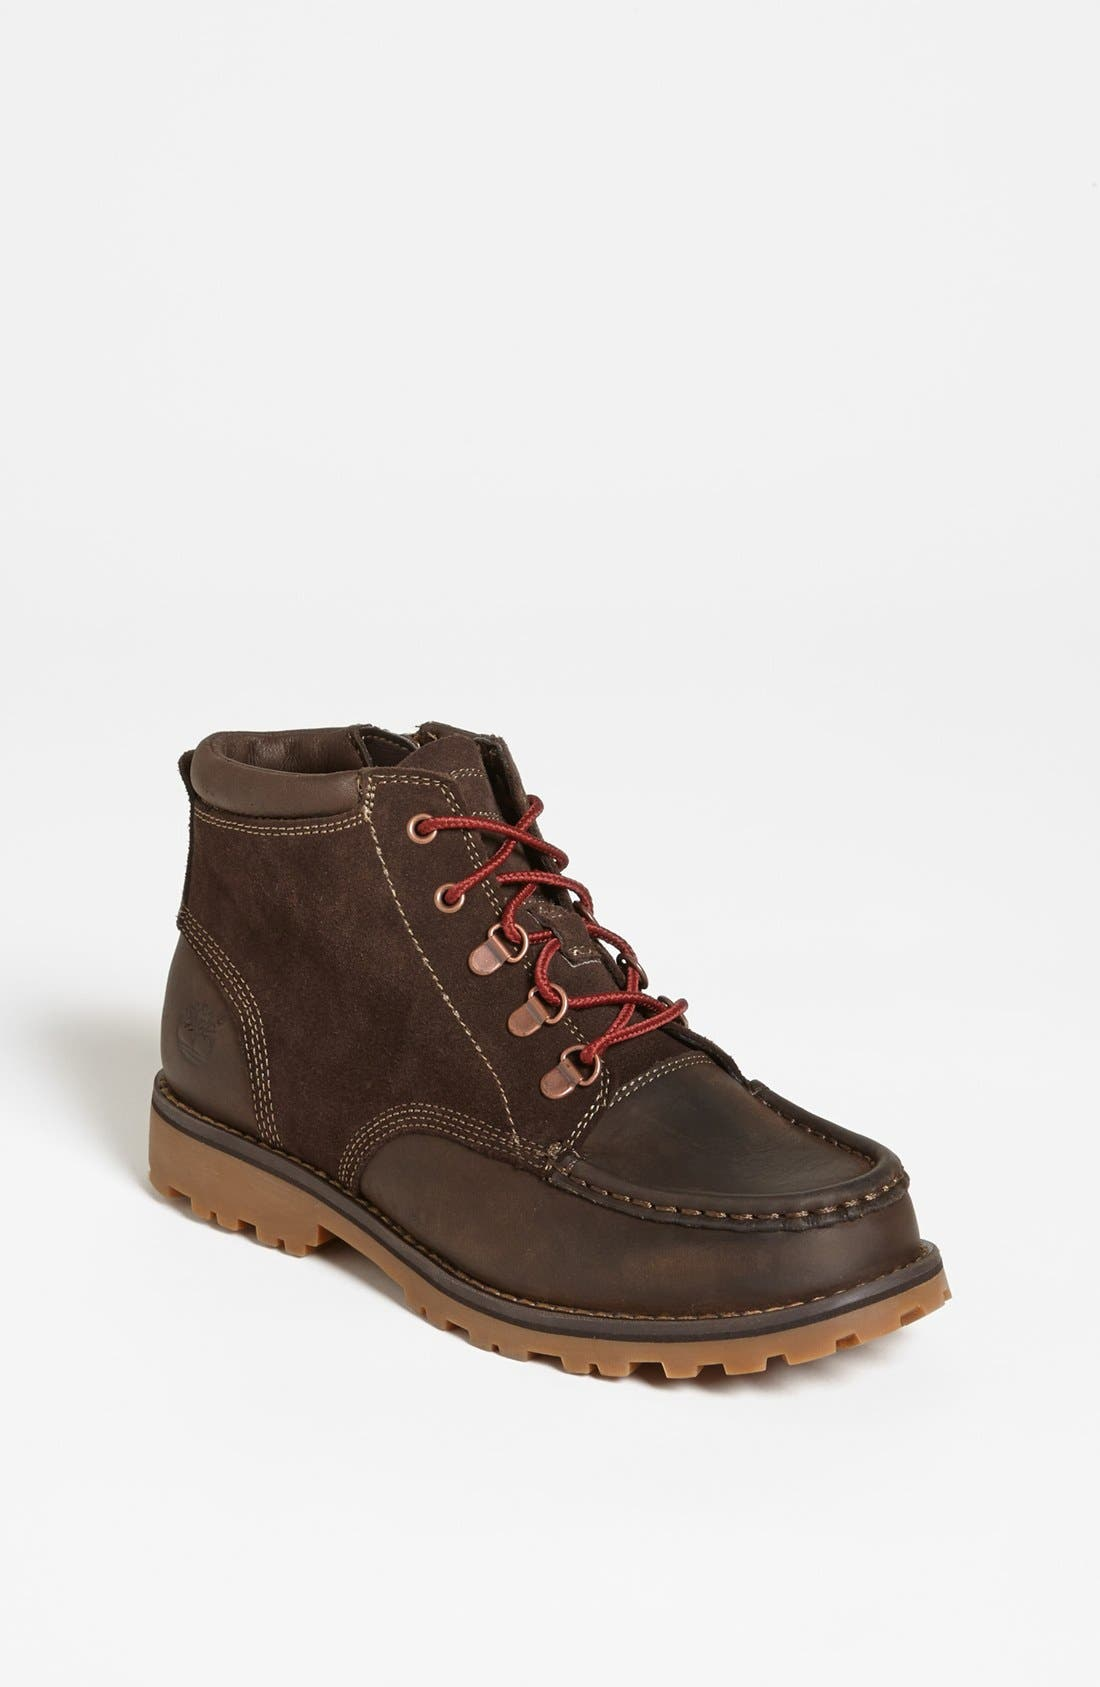 Alternate Image 1 Selected - Timberland Earthkeepers® 'Asphalt' Boot (Little Kid & Big Kid)